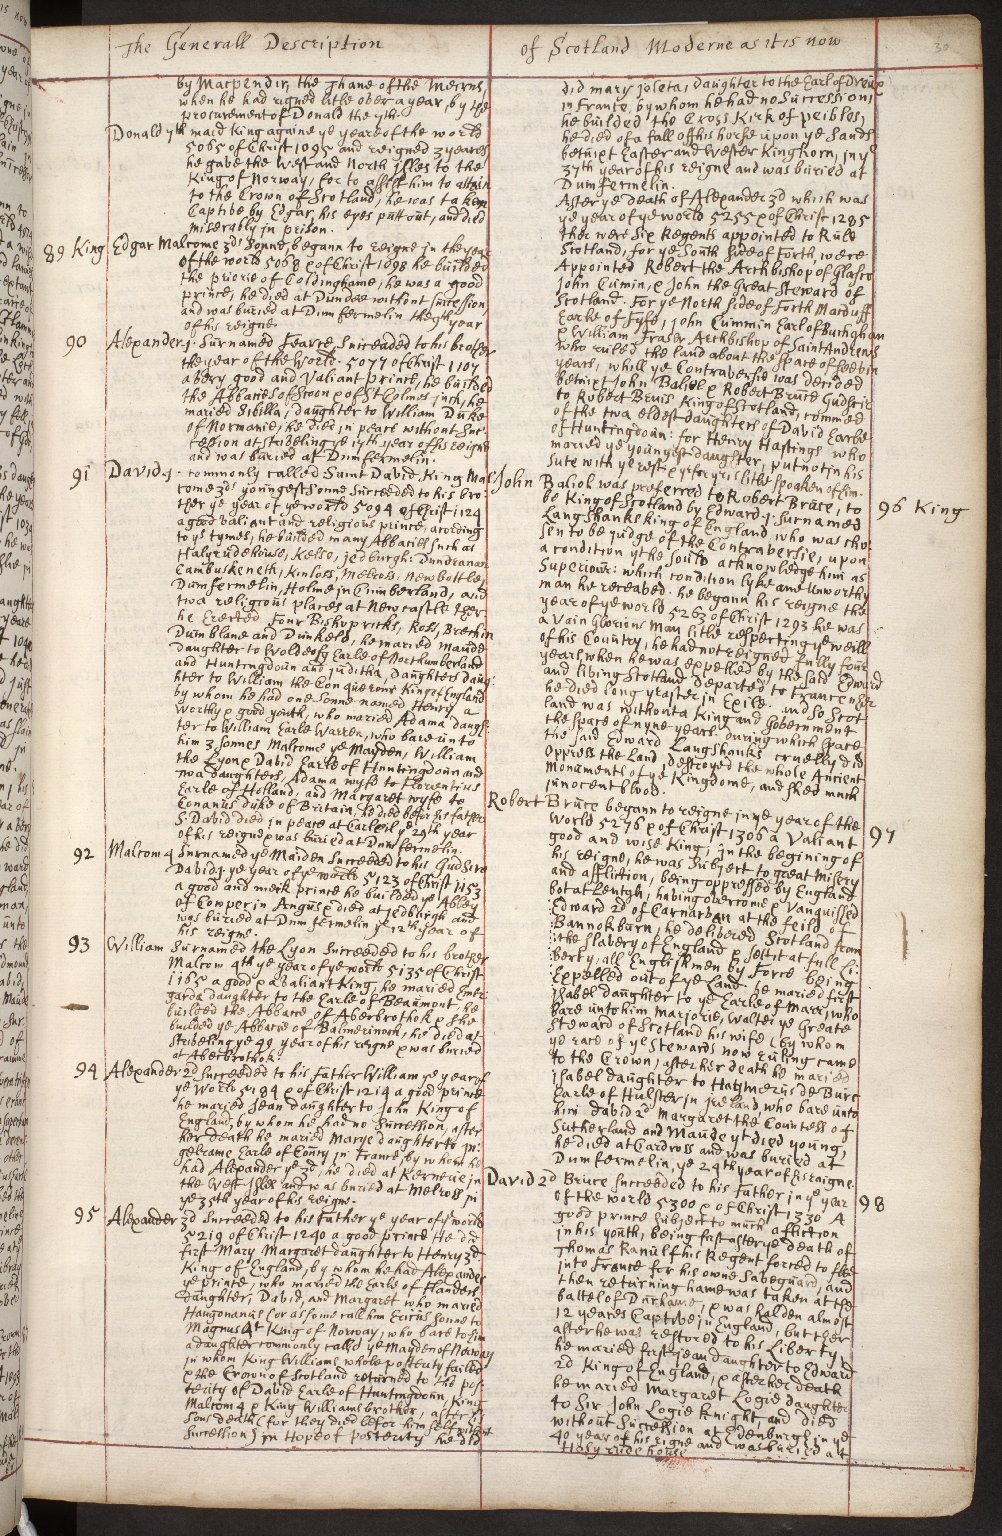 Atlas Scoticus, or a Description of Scotland Ancient and Modern. [043 of 259]